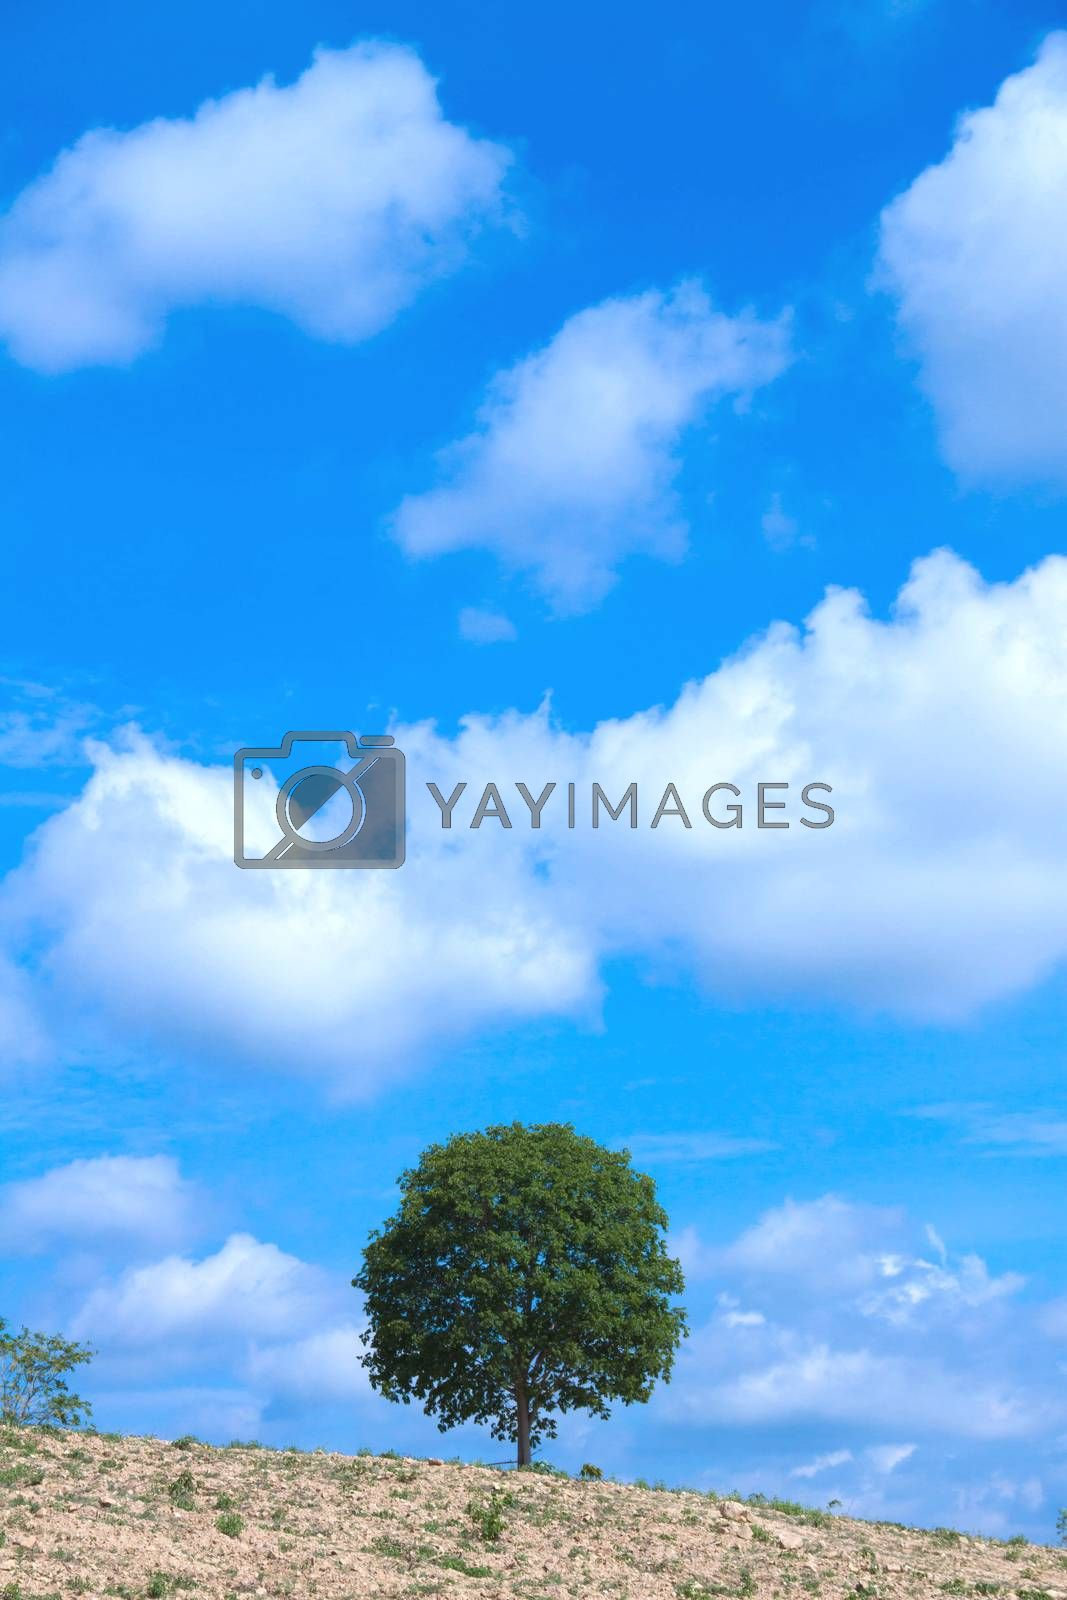 Tree and sky by jee1999